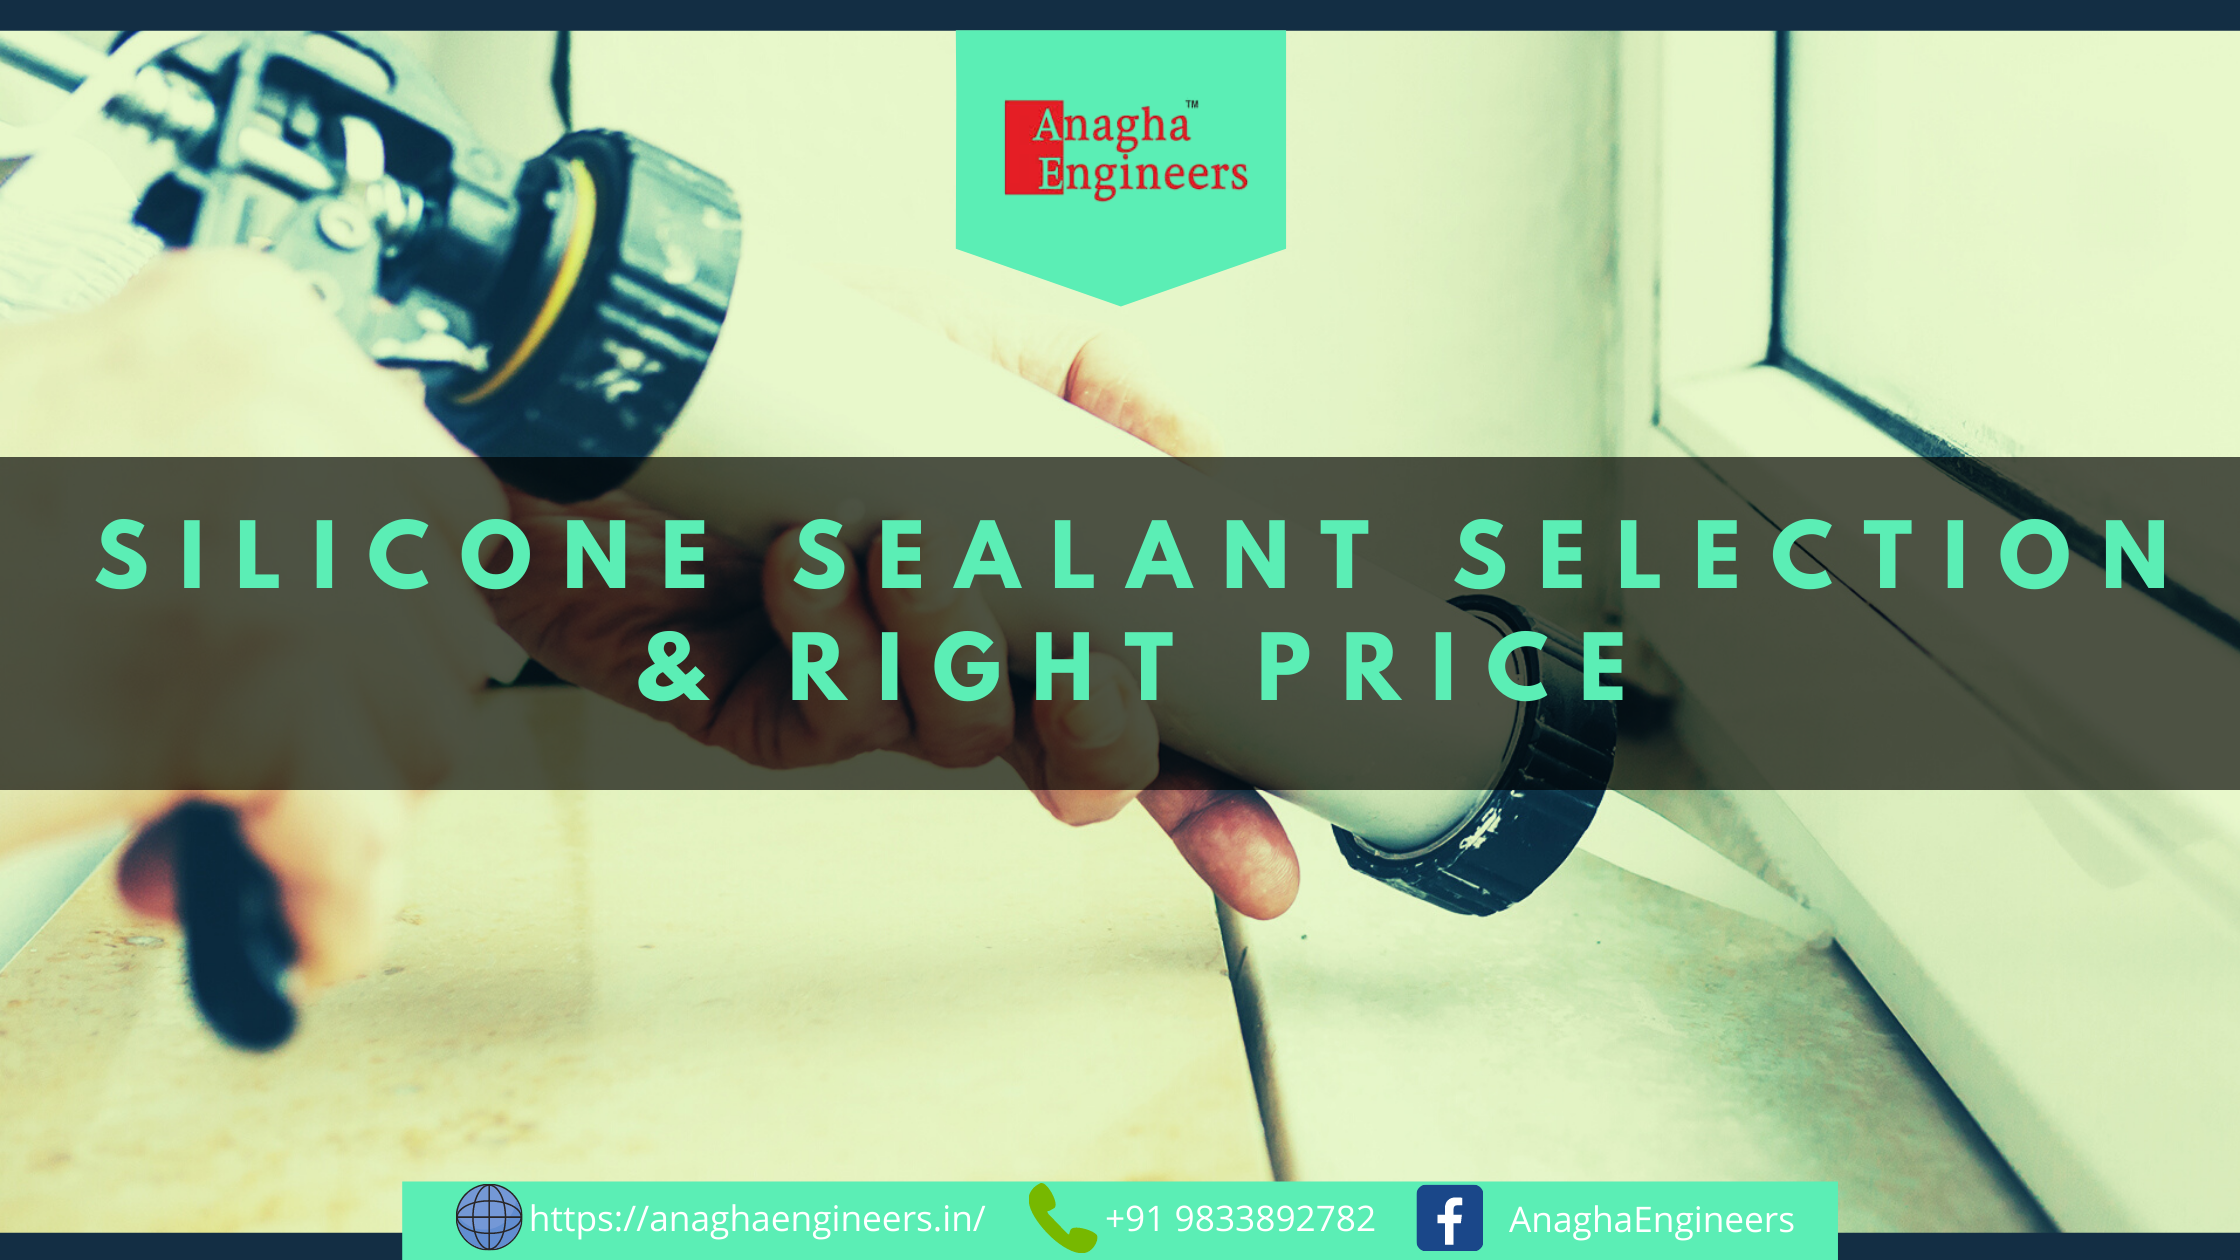 Silicone sealant selection & right price